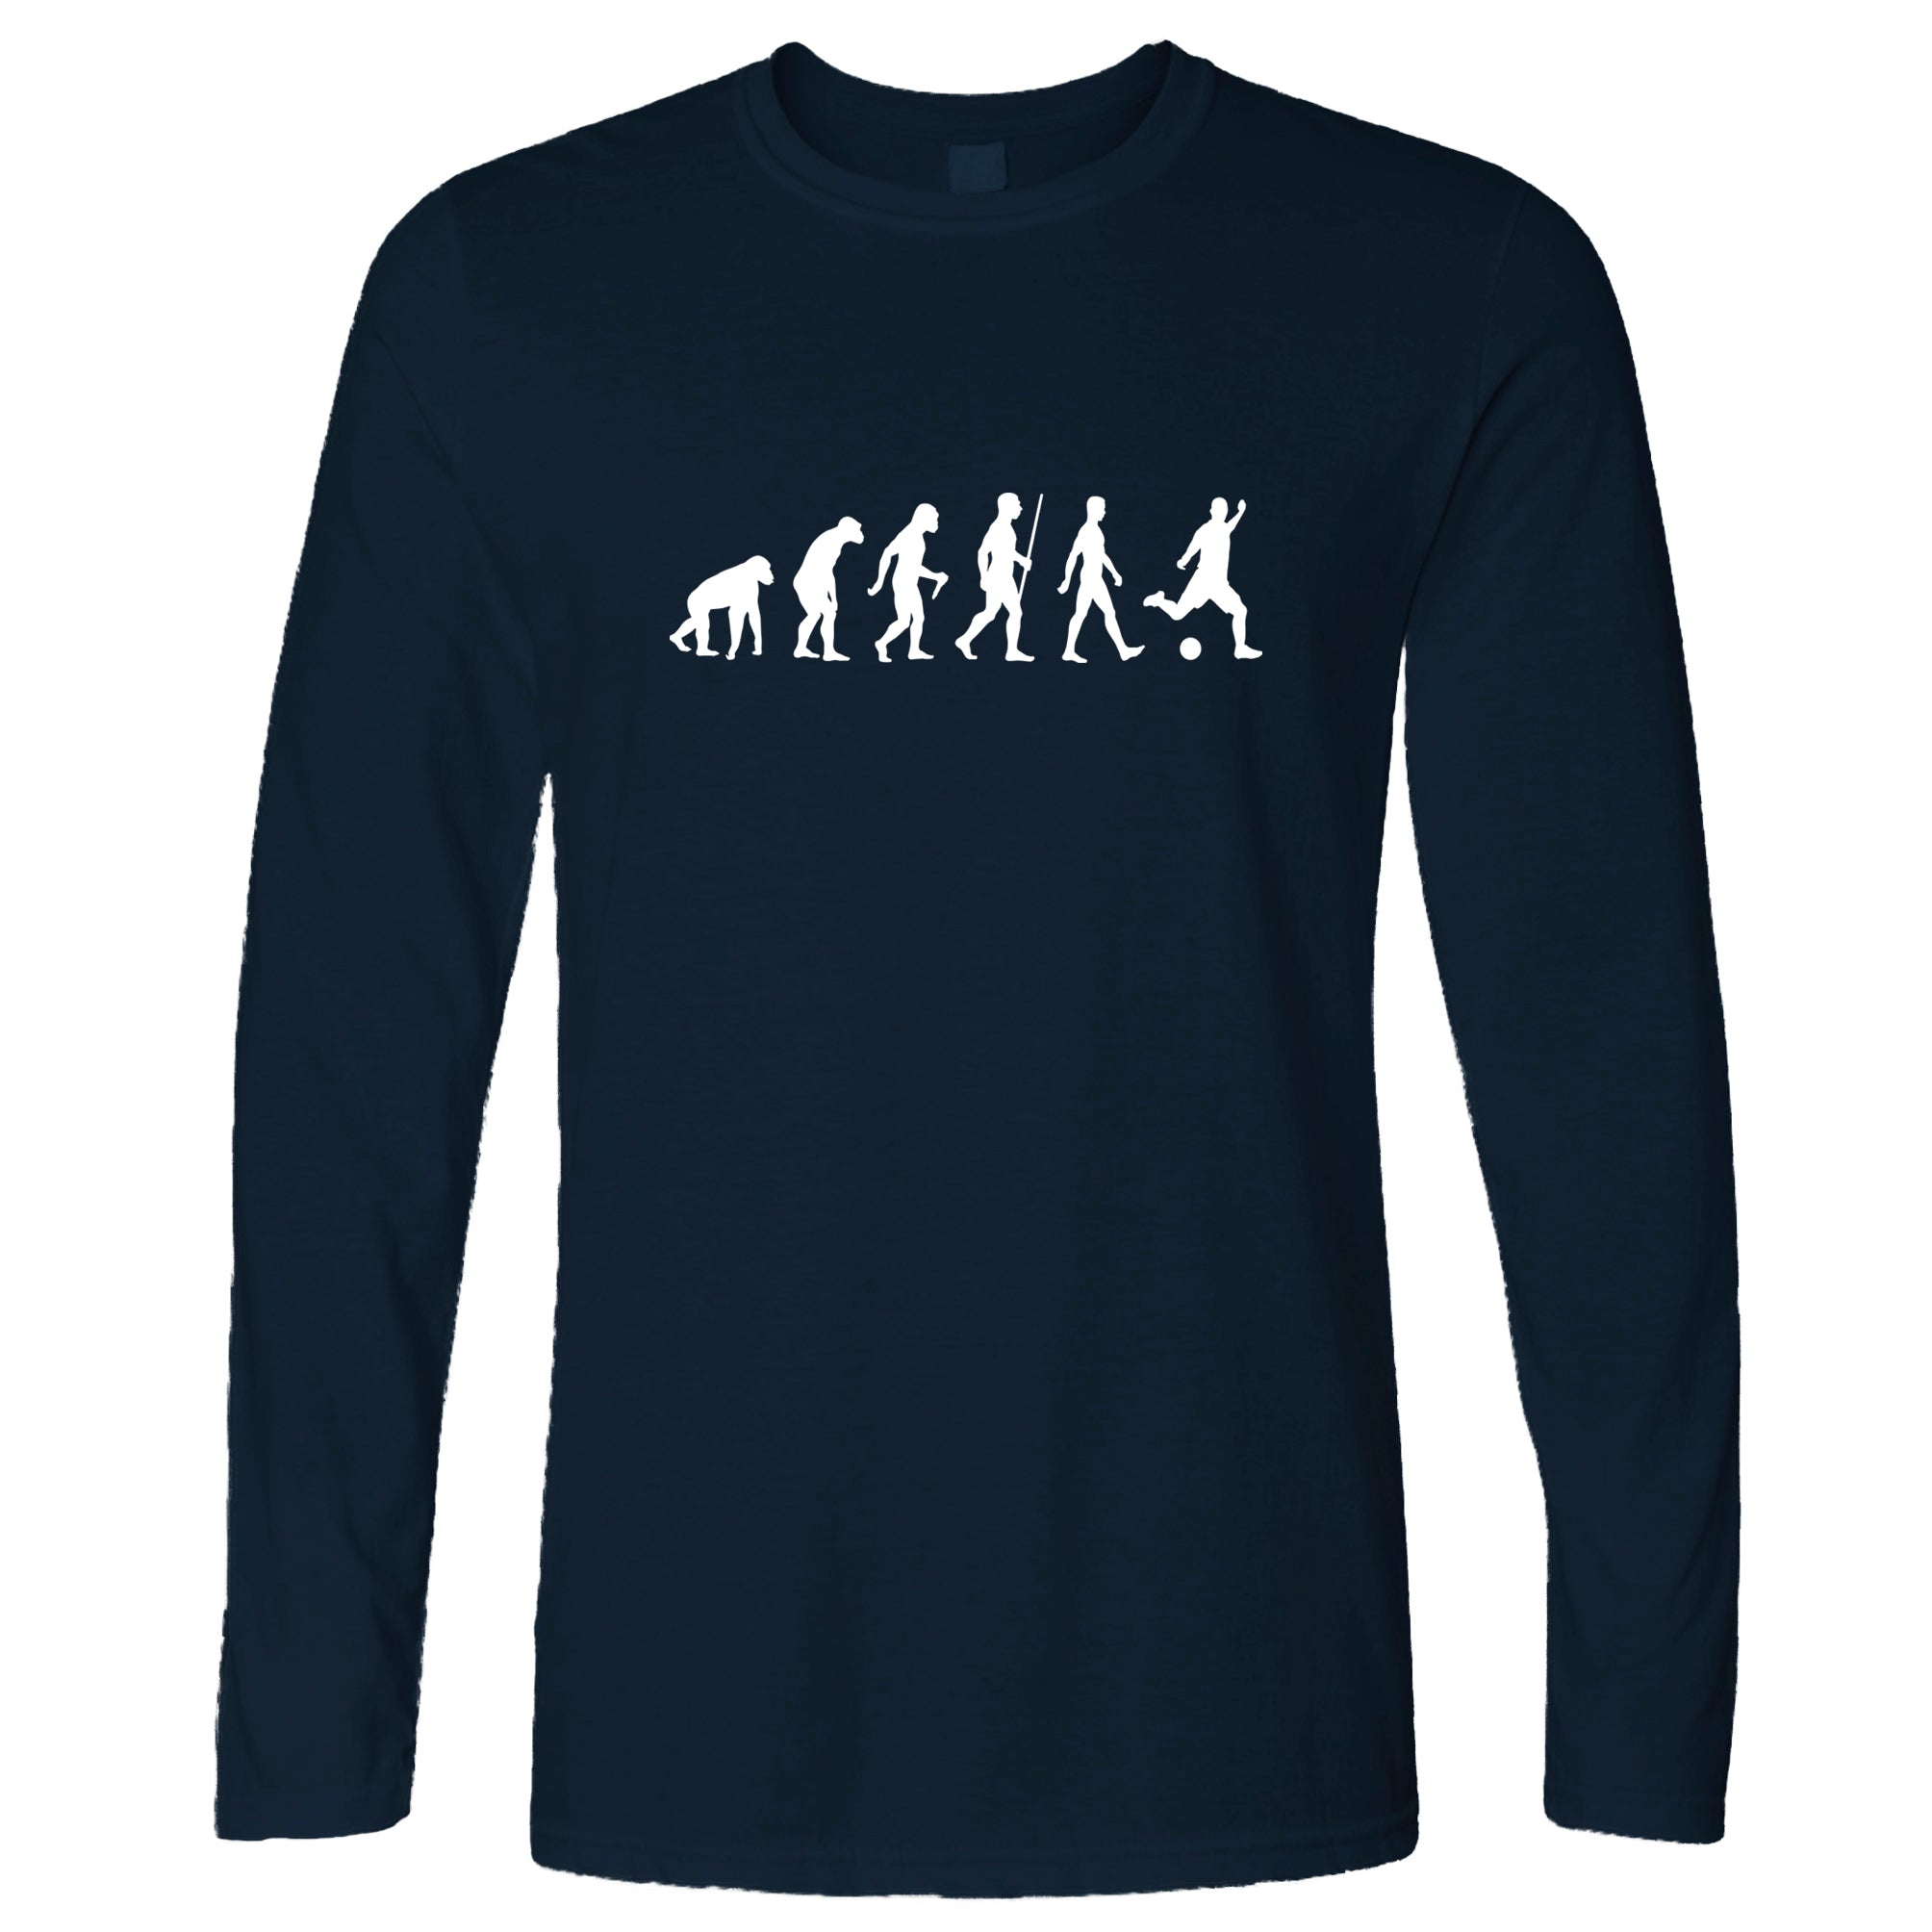 Football Fan Long Sleeve The Evolution Of A Footballer T-Shirt